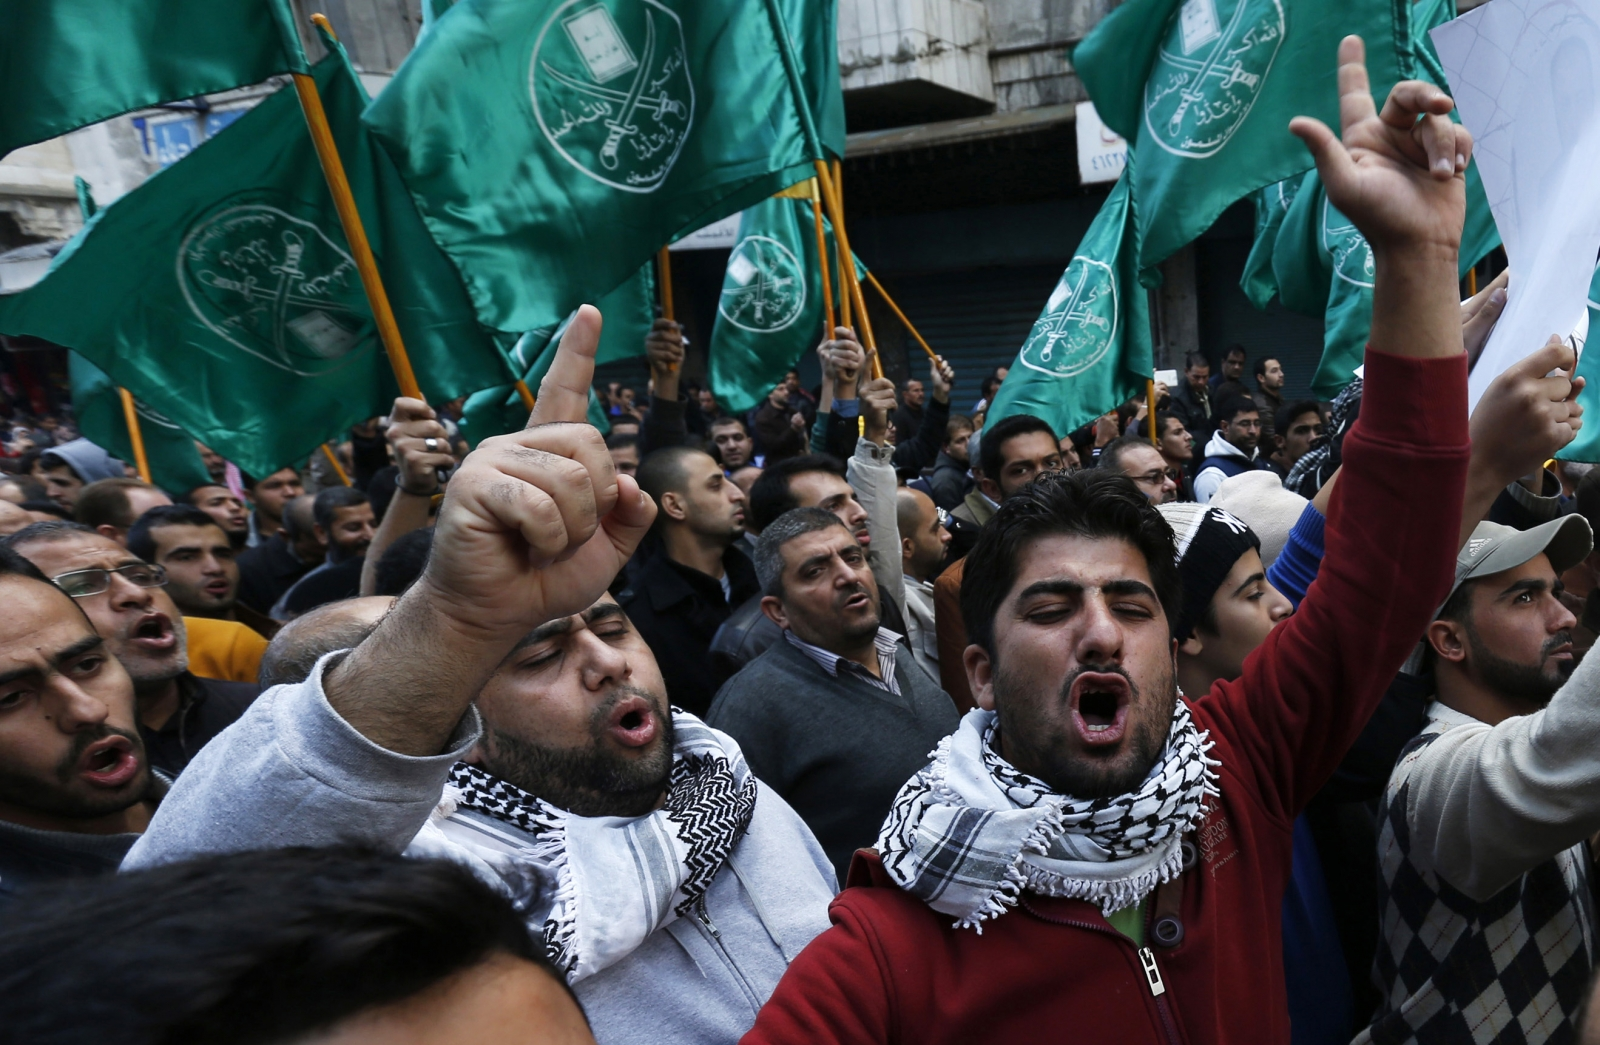 Protesters from the Islamic Action Front